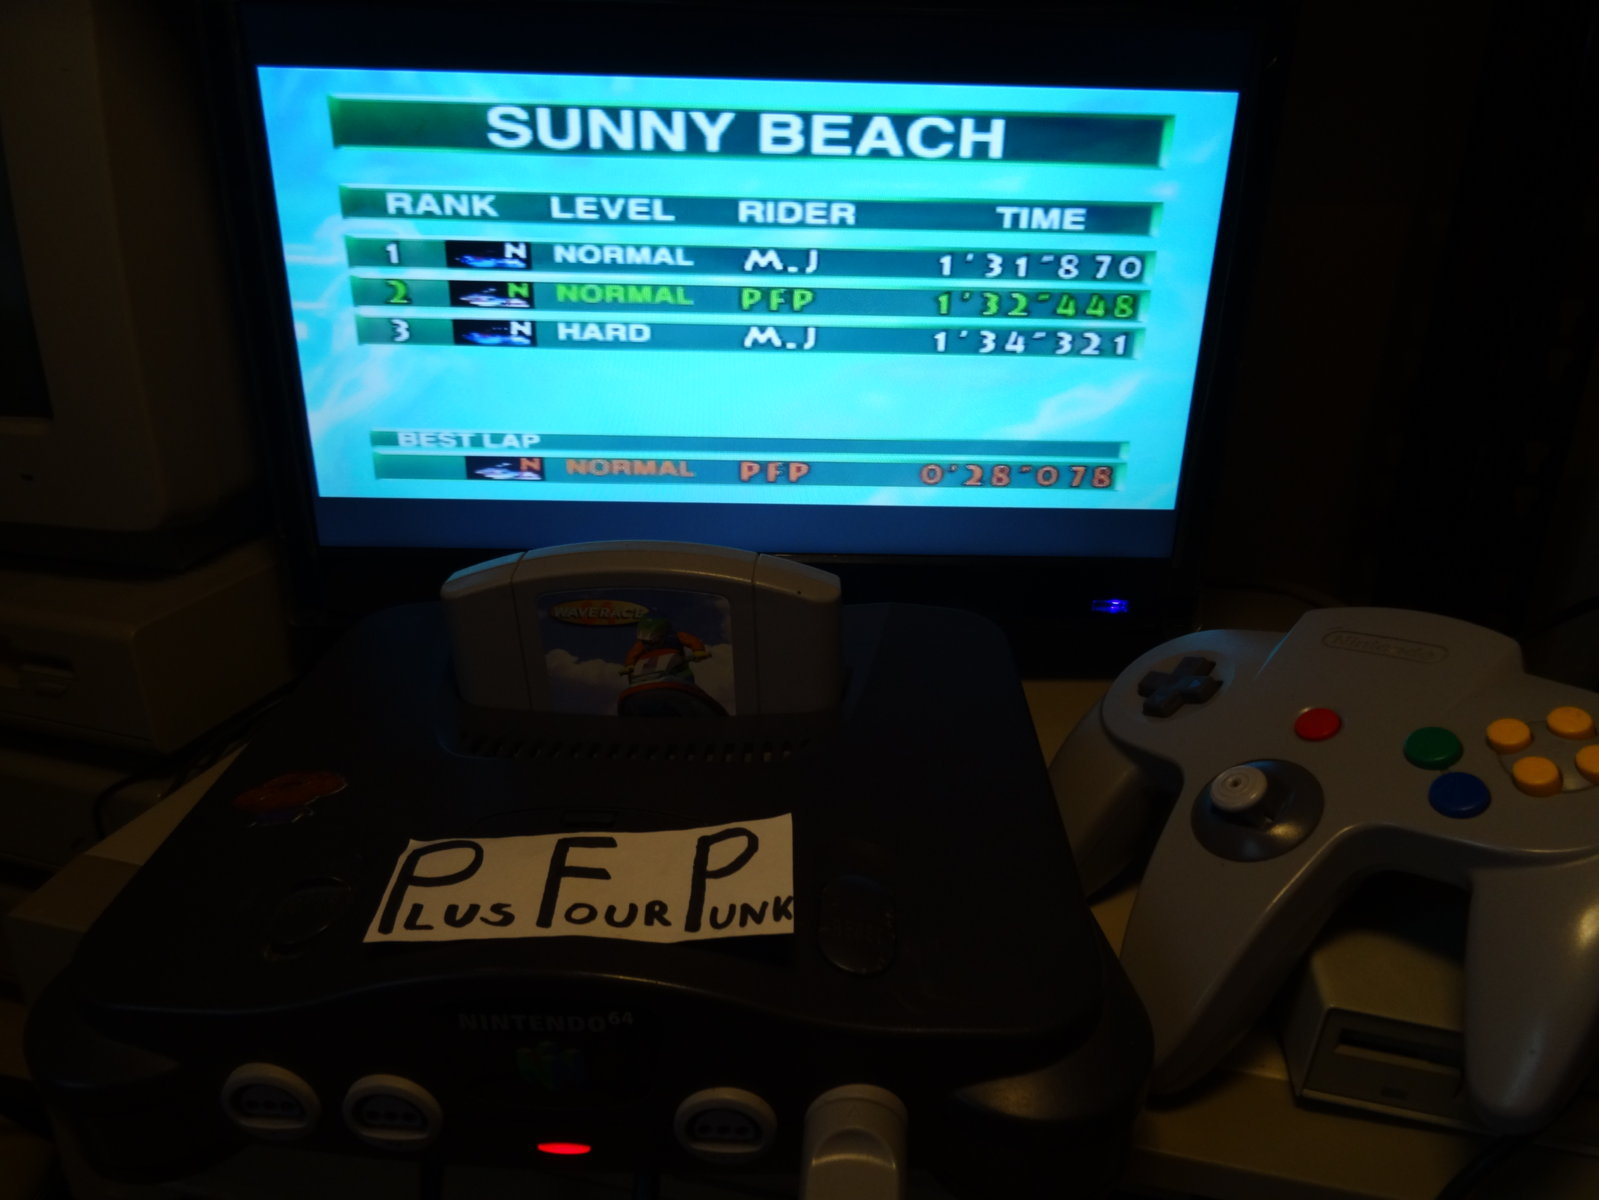 Wave Race: Sunny Beach [Time Trial] [Normal] [Lap Time] time of 0:00:28.078